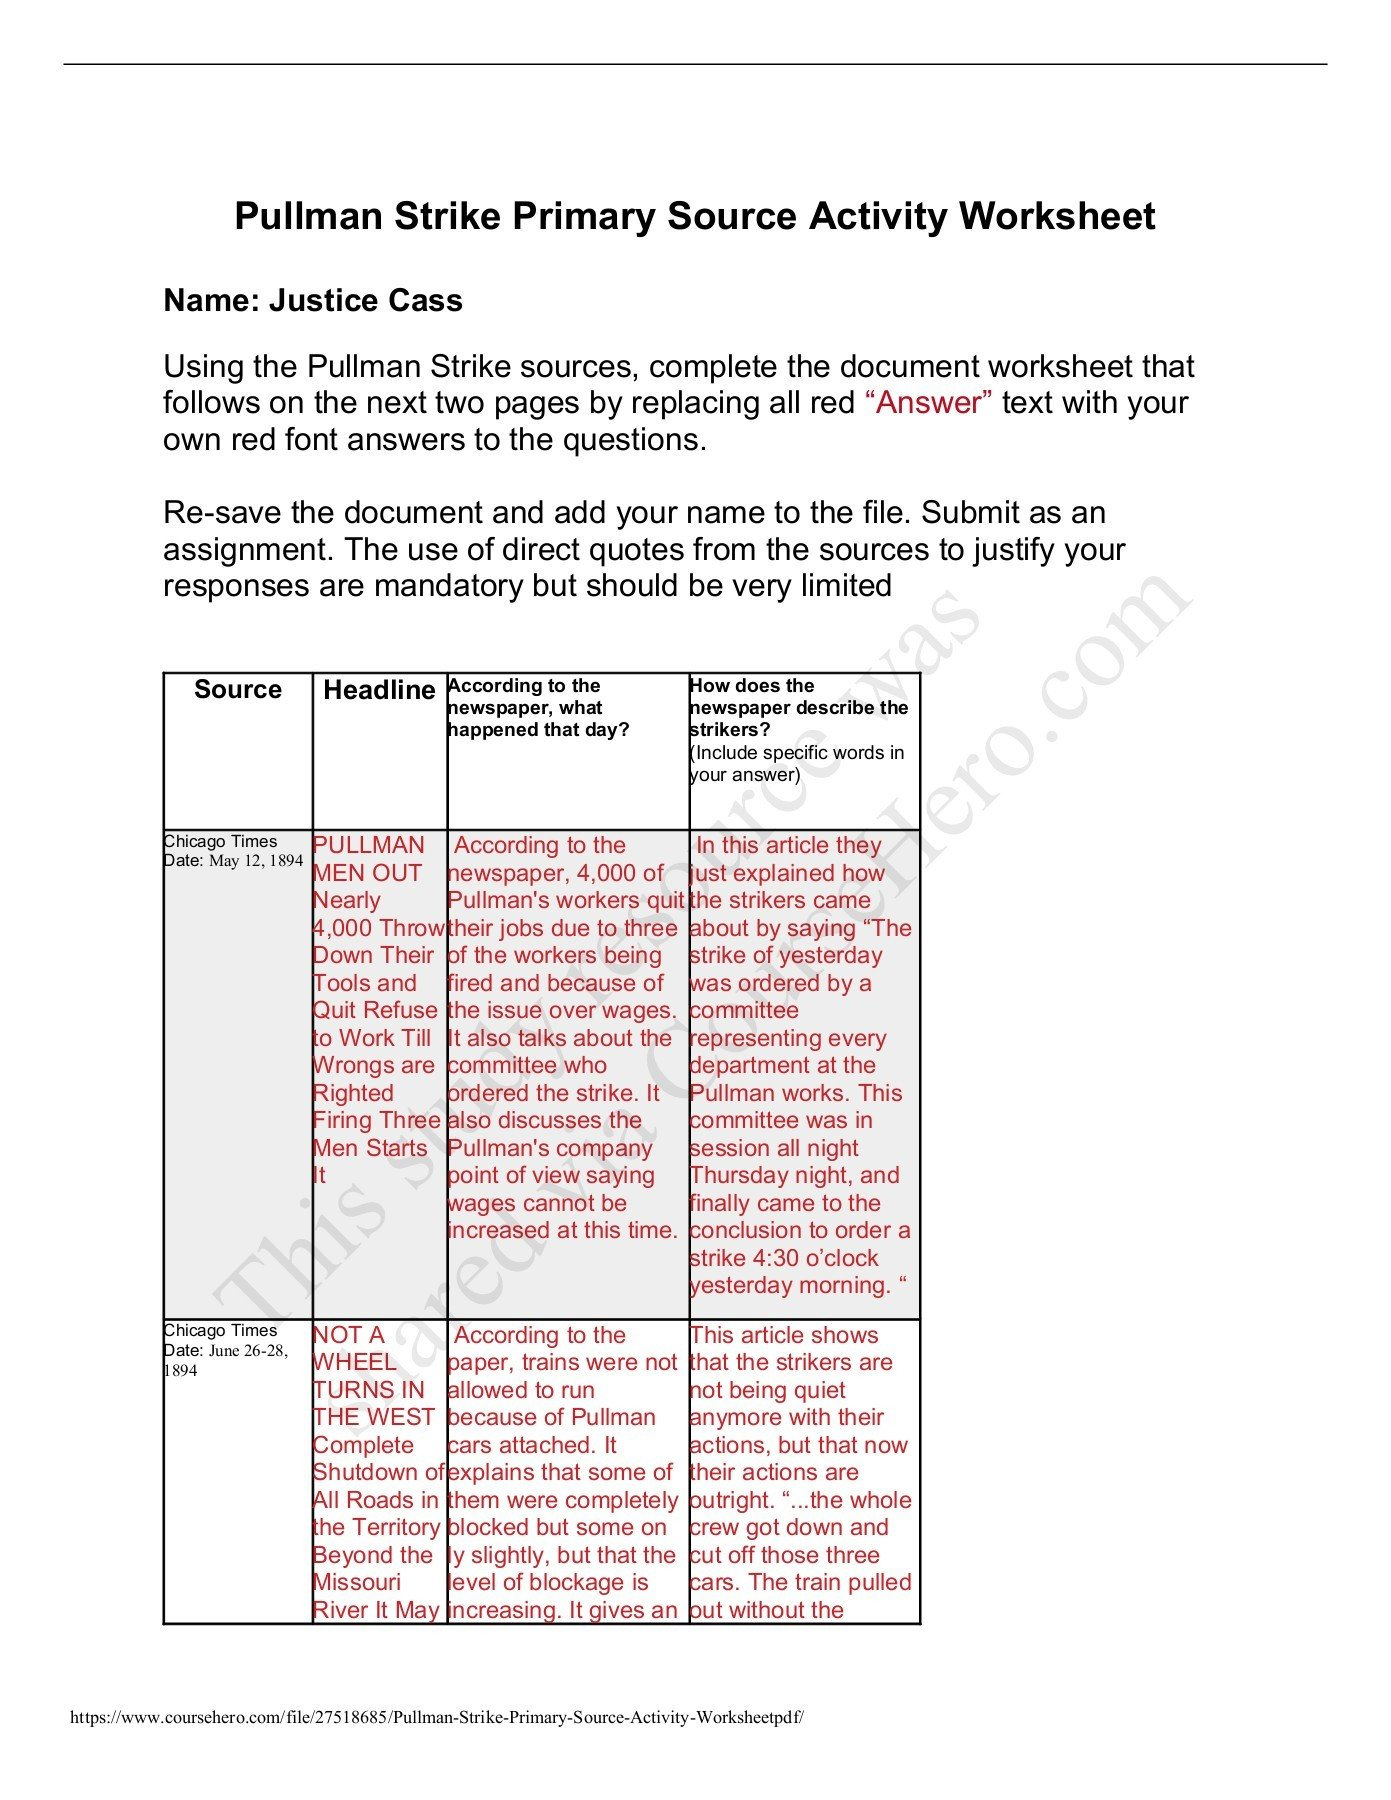 Graphic sources Worksheet Pdf 1 Pages 1 4 Text Version